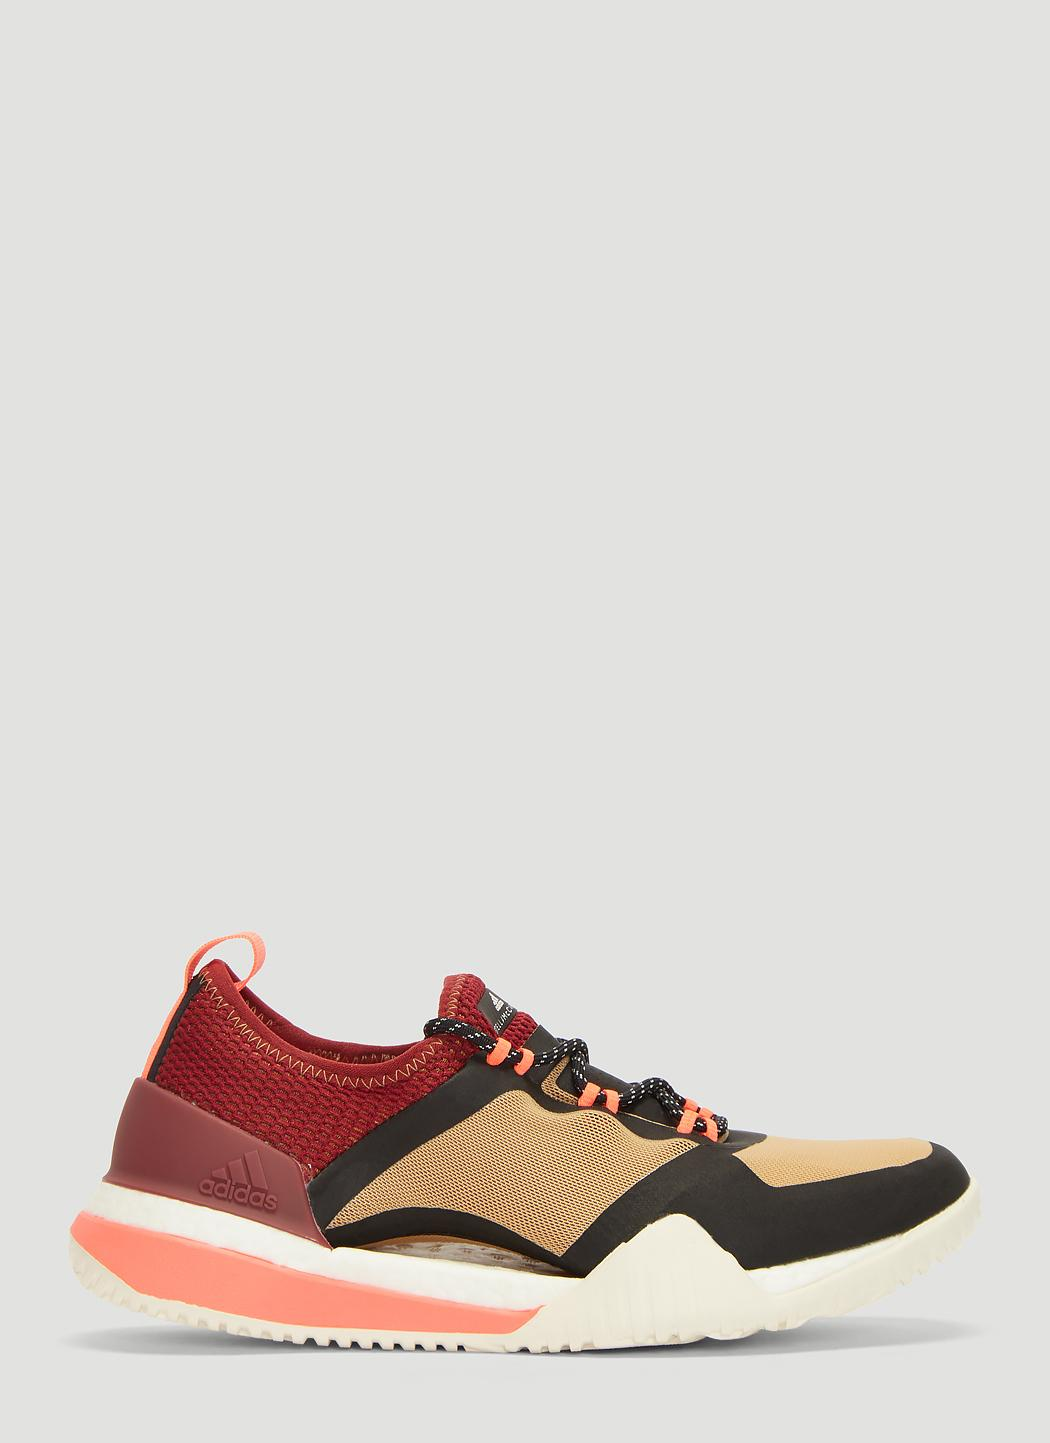 34cdd6ea2a93d adidas By Stella McCartney. Women s Natural Pureboost X Tr 3.0 Running  Sneakers ...